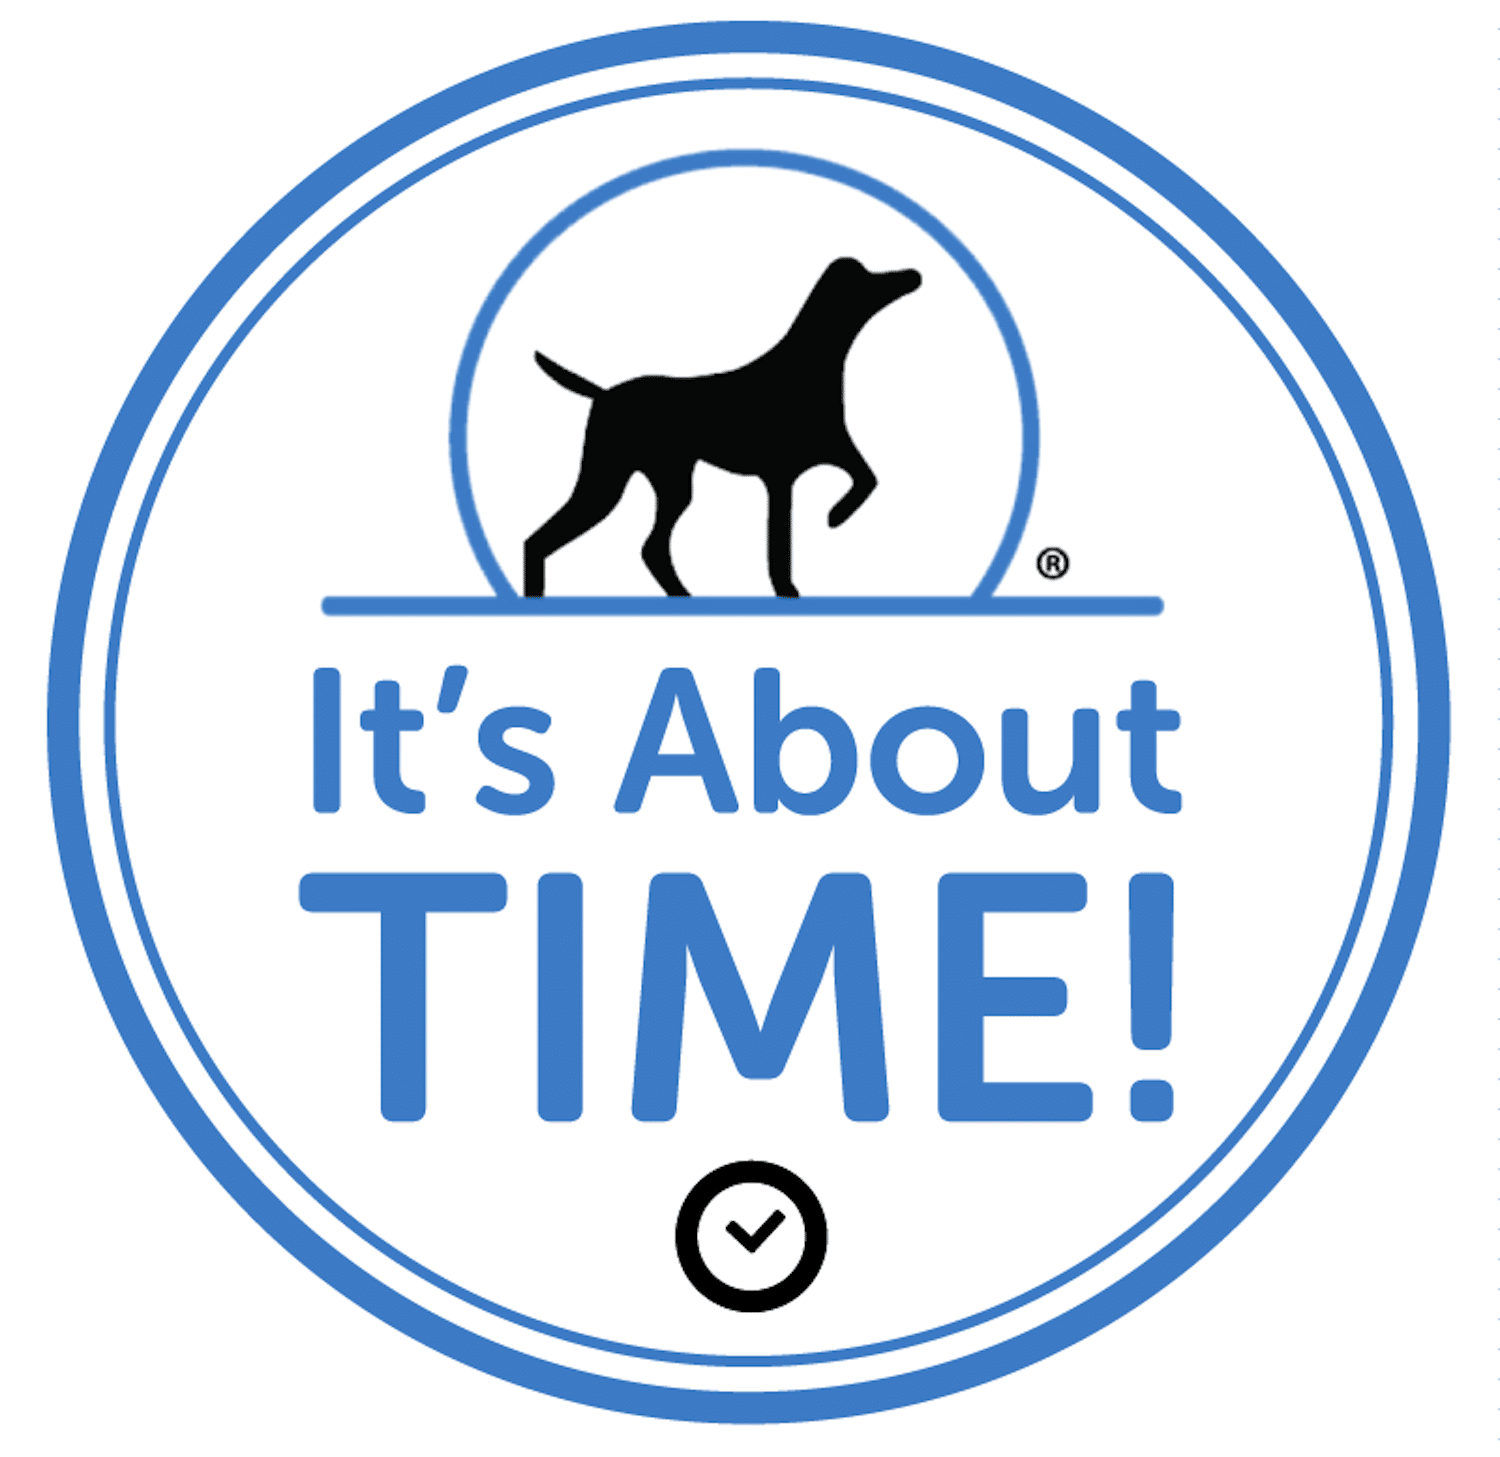 beckys-pet-care-time-based-services-dog-walking-pet-sitting-affordable-pricing